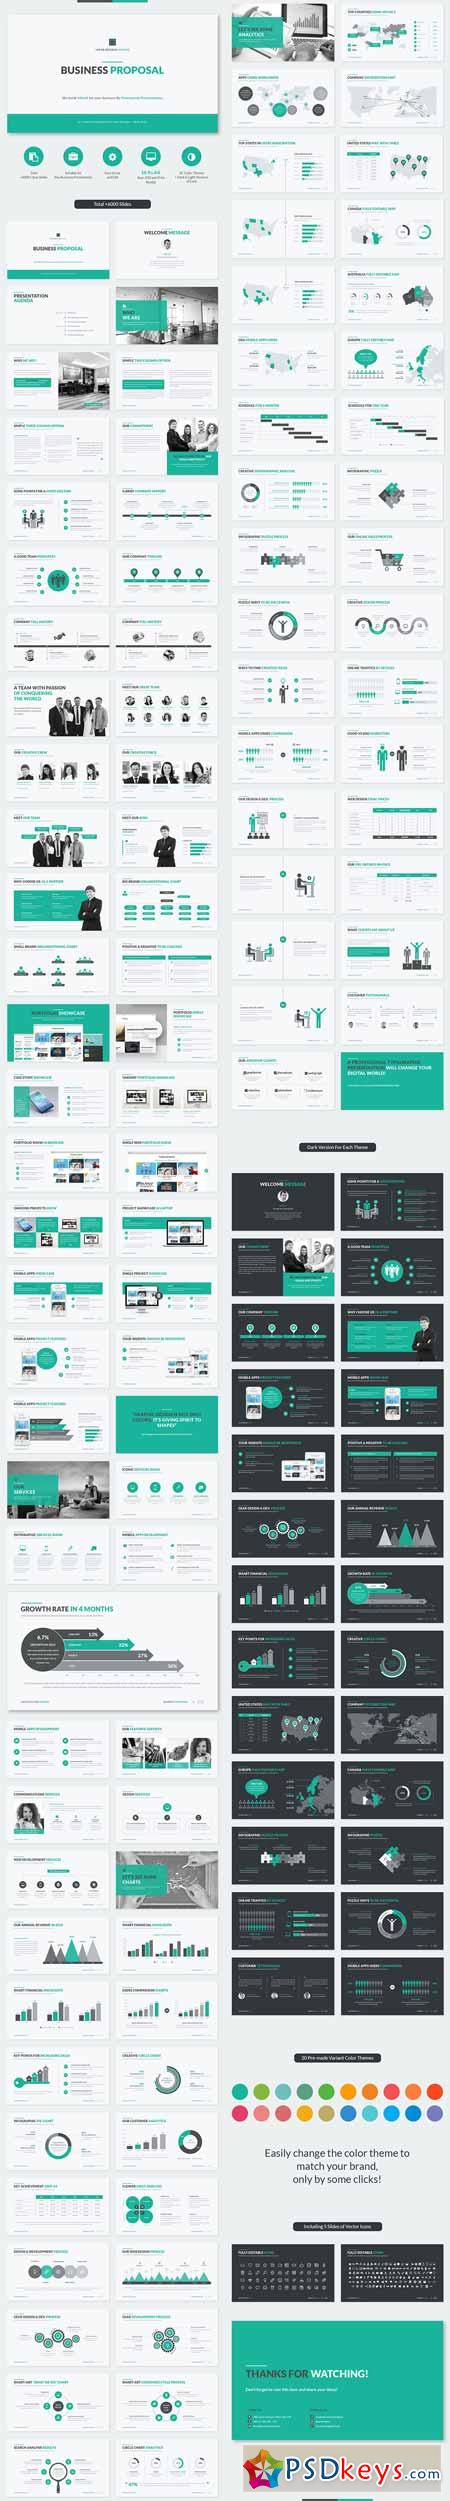 Business proposal powerpoint template 11833931 free download business proposal powerpoint template 11833931 toneelgroepblik